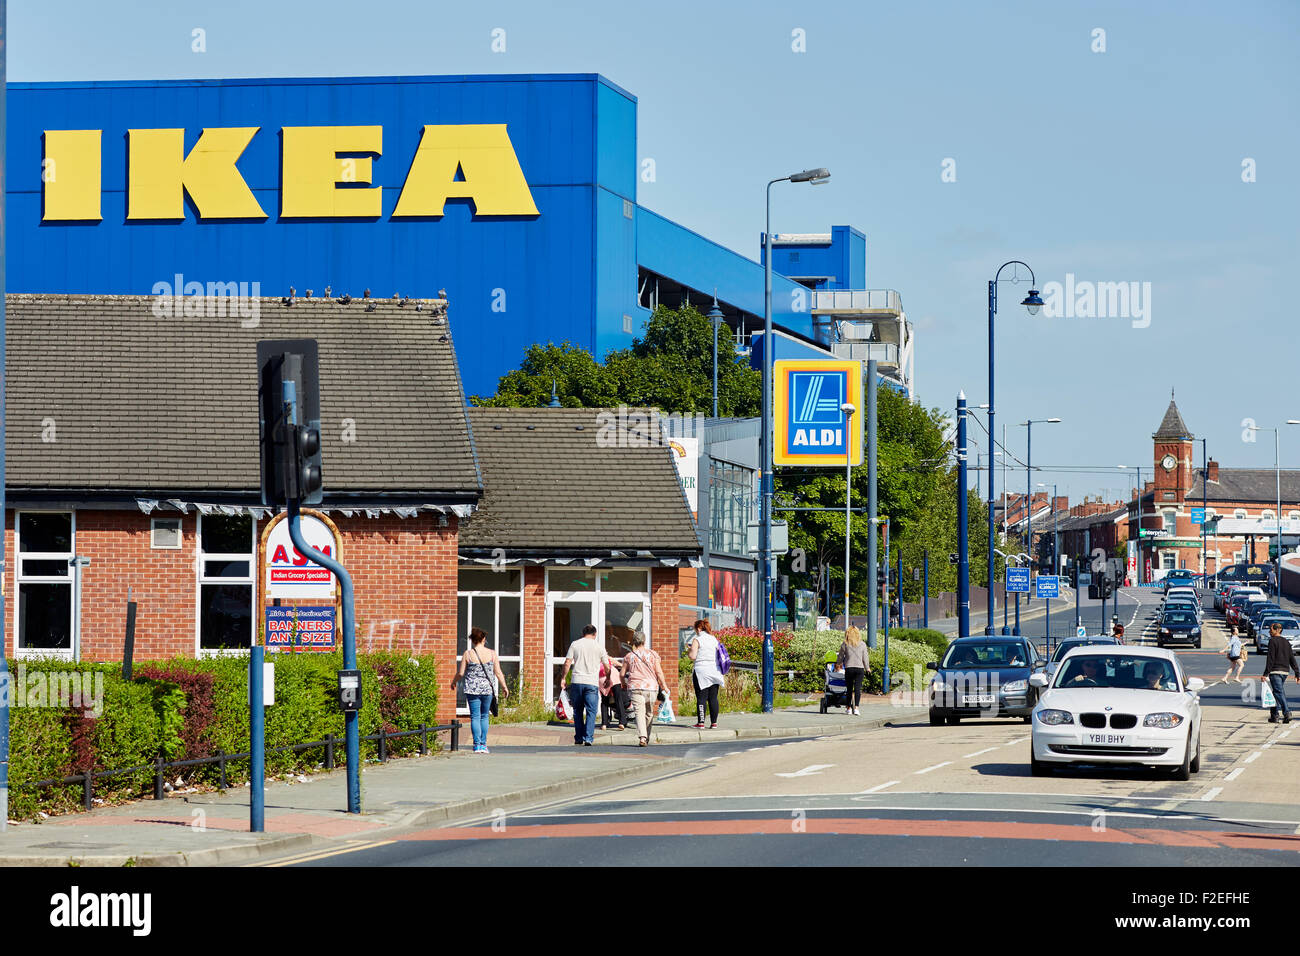 Ikea furniture store exterior on a sunny day in Aston-under-Lyne Tameside  Gtr Manchester Uk